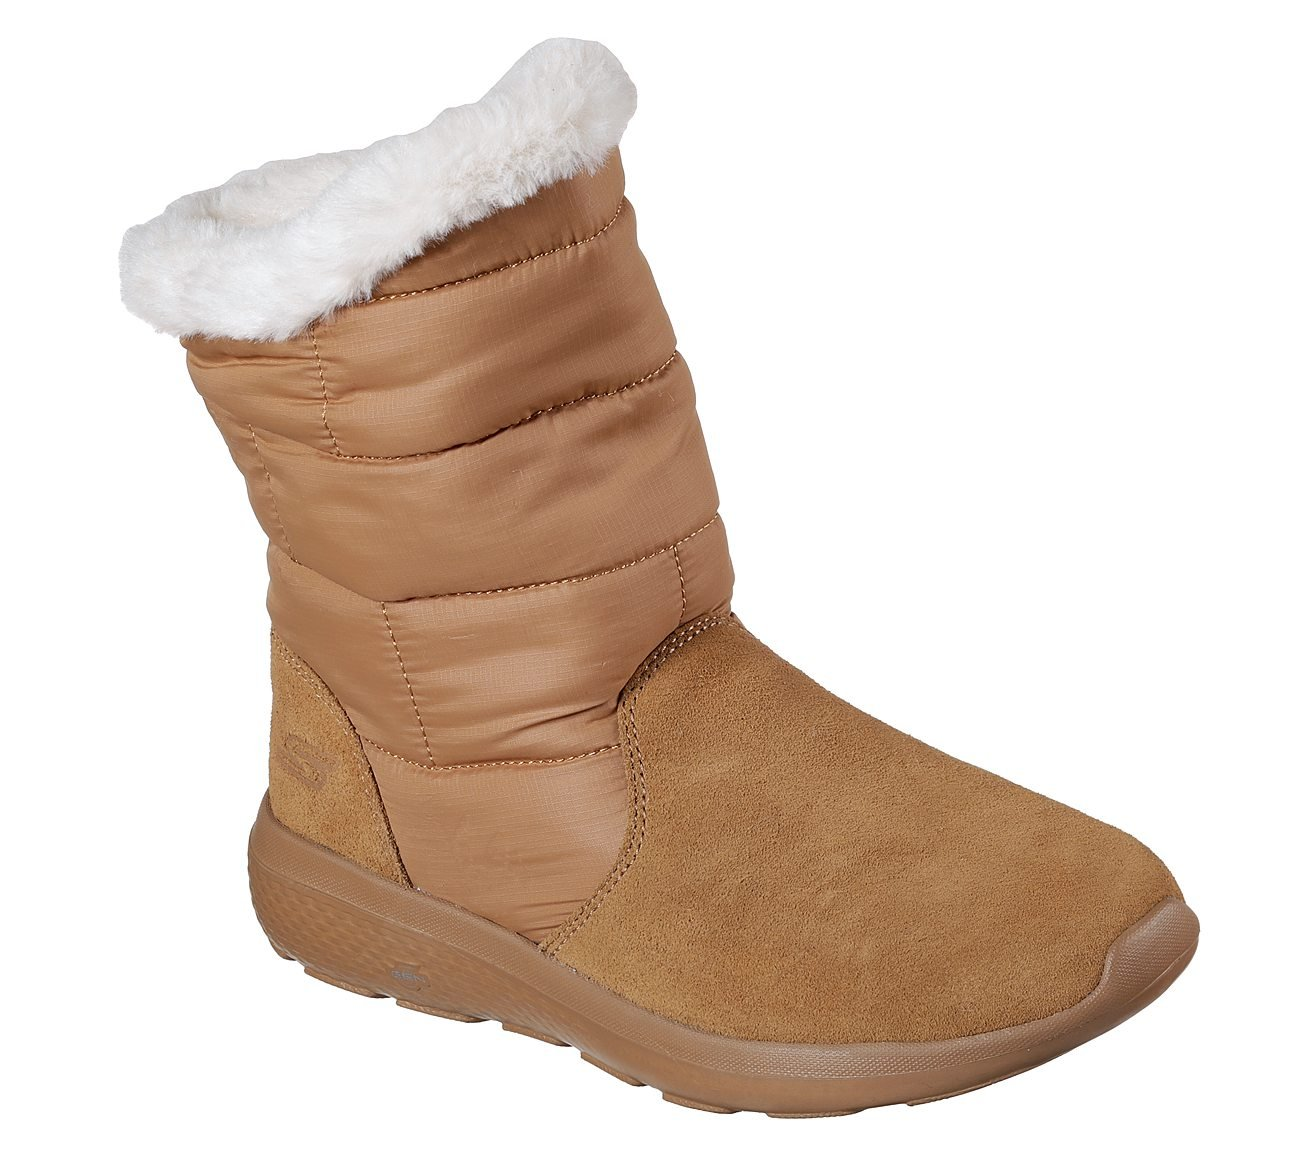 Skechers Women's On-The-Go City 2-Puff Winter US|Brown Boot B075TH5WZH 6 B(M) US|Brown Winter 48e949